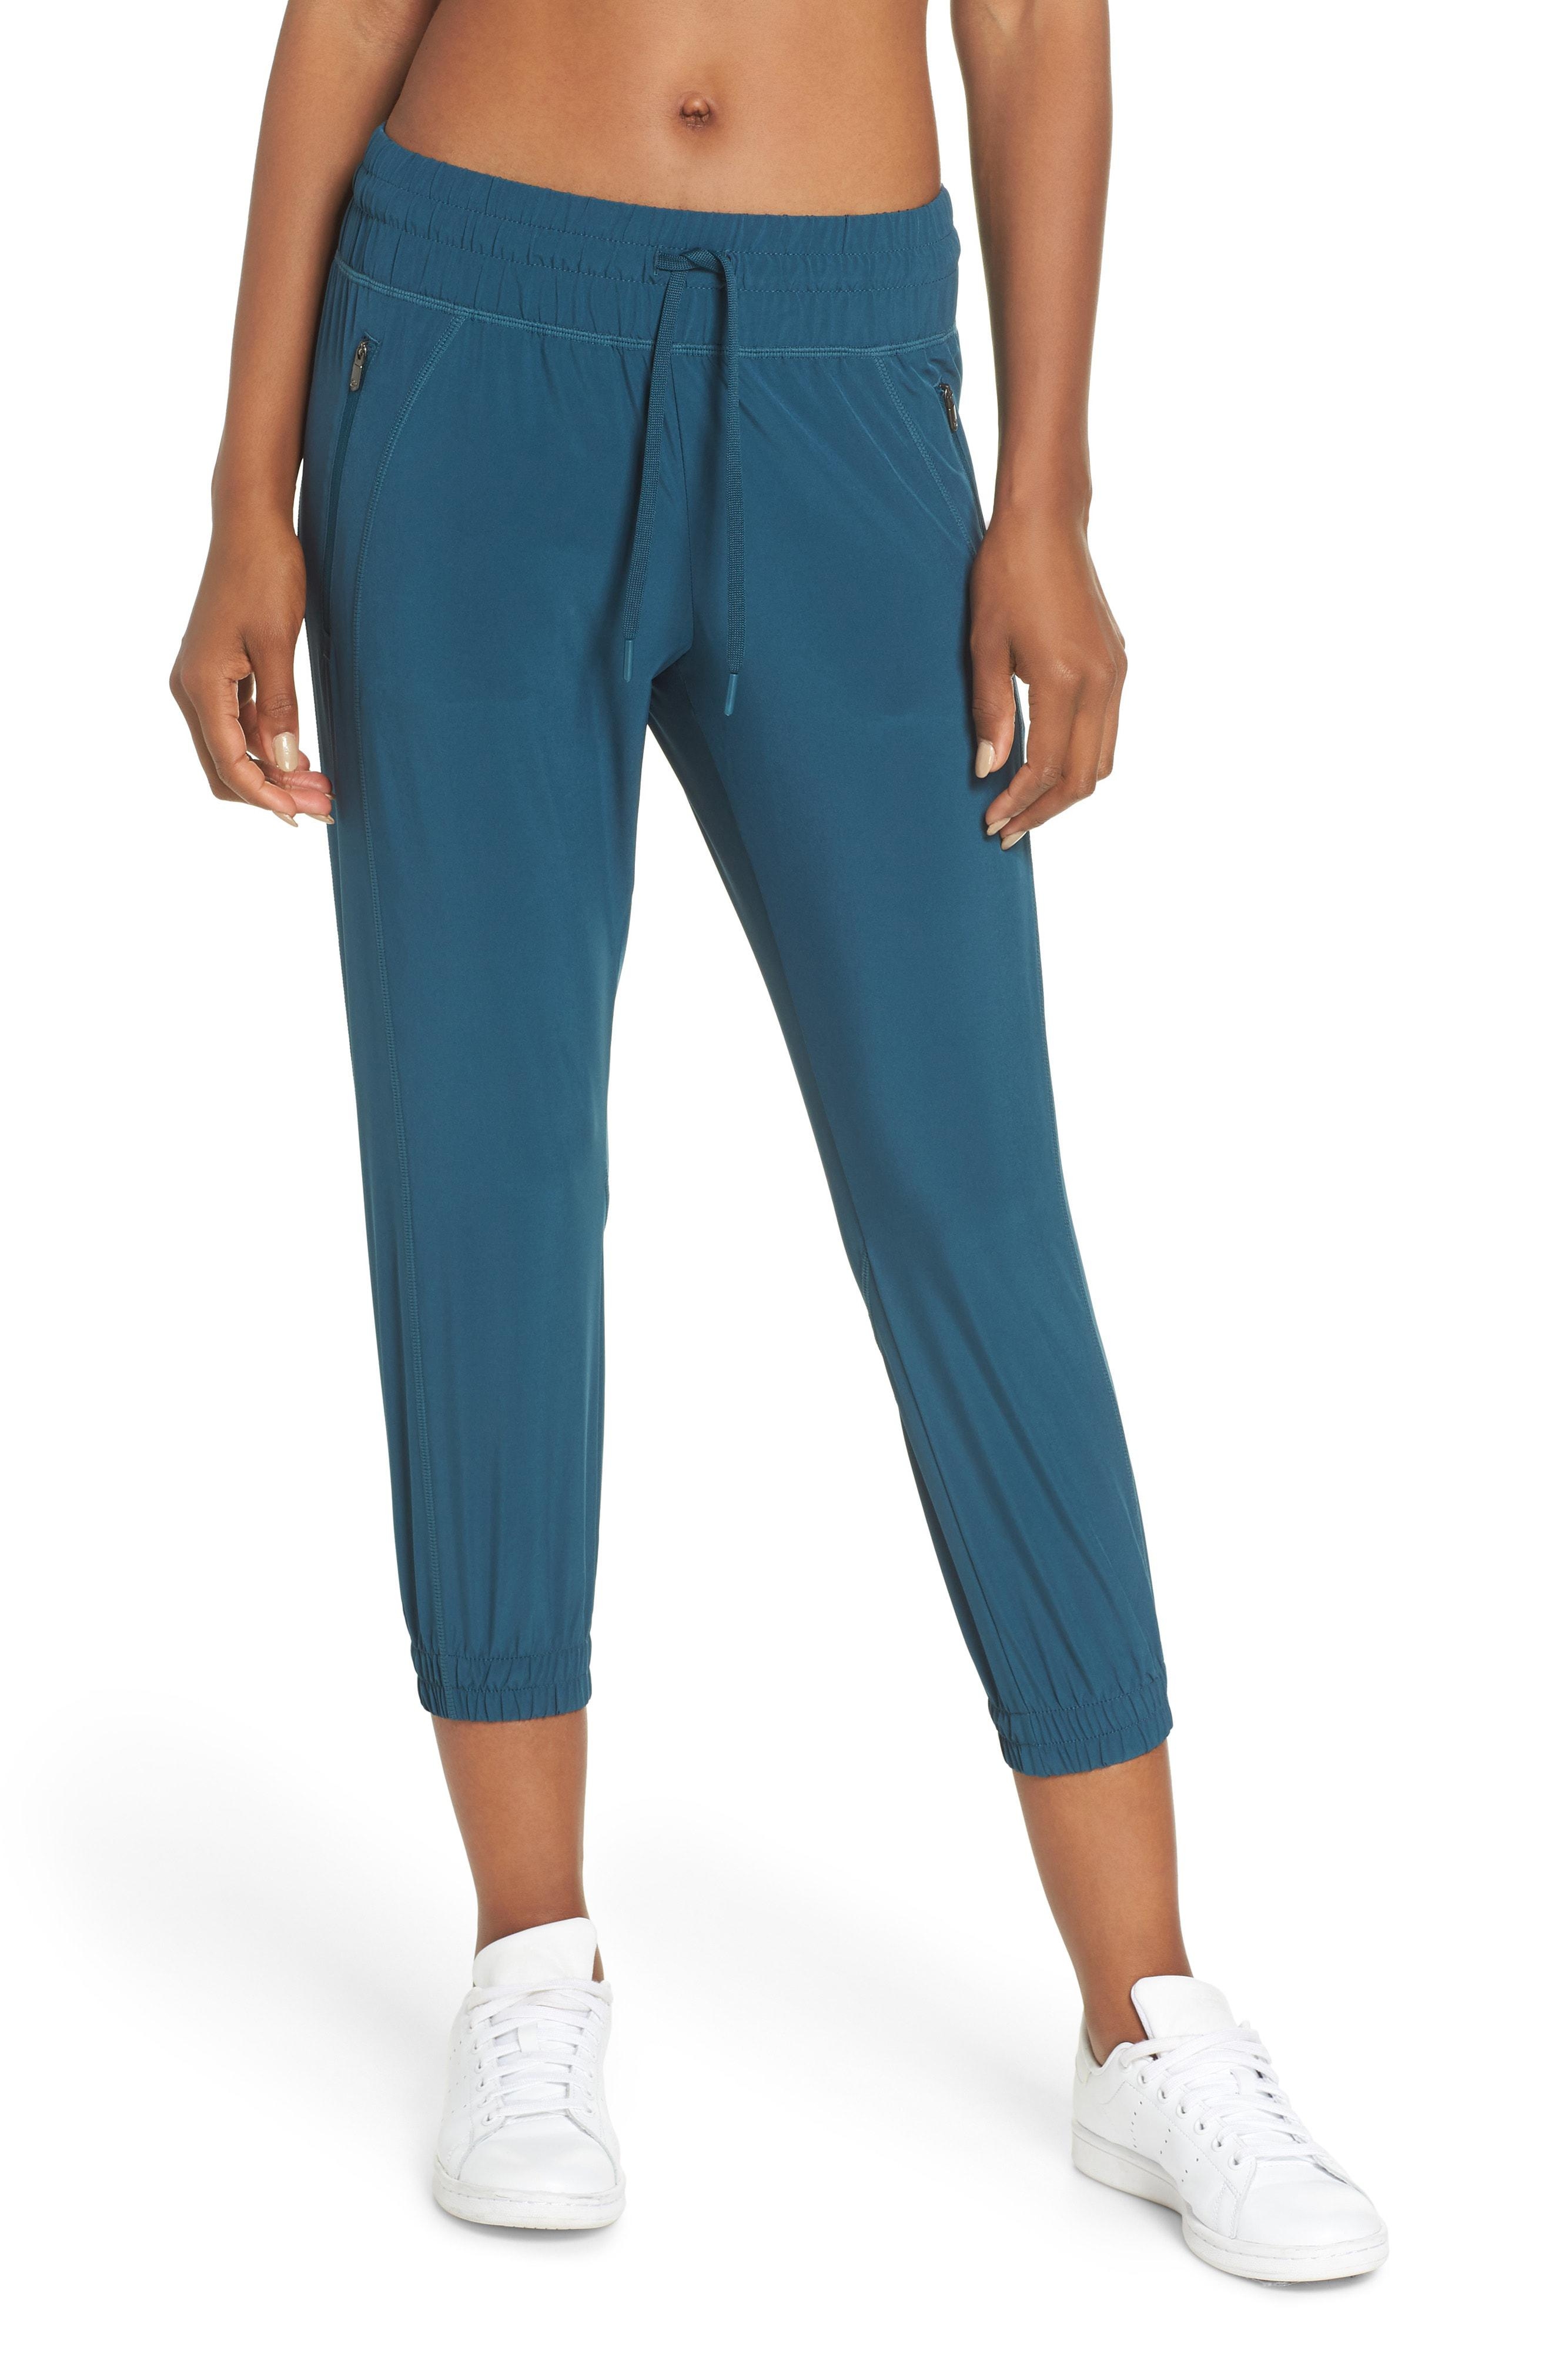 4dc4feca93 Lyst - Zella Out & About 2 Crop Pants in Blue